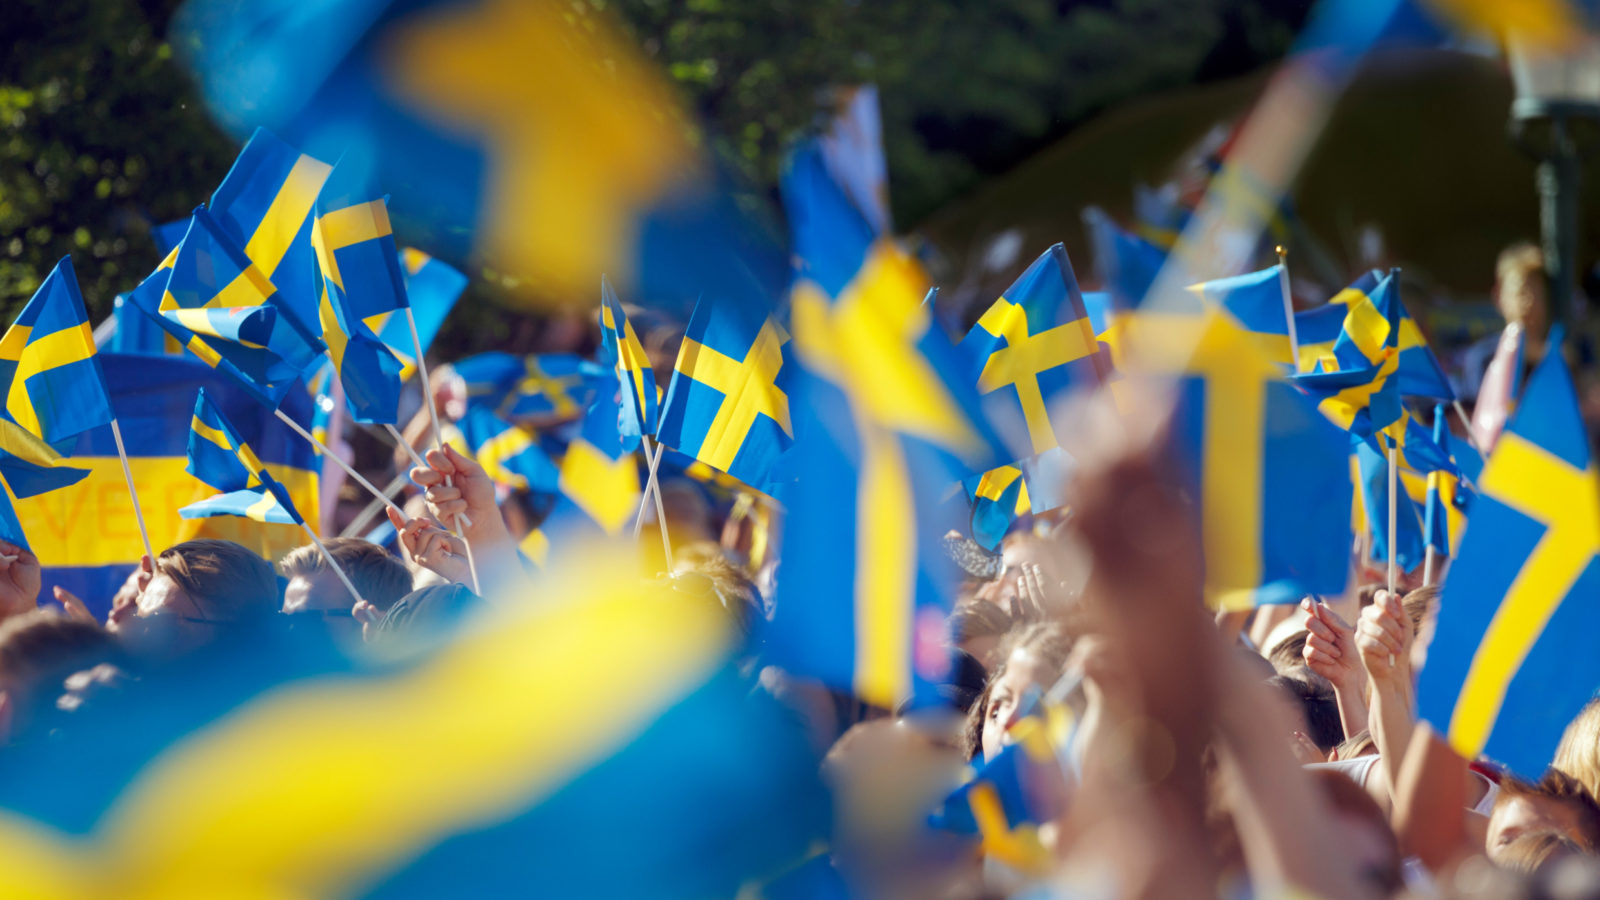 Image of hands holding Swedish flags